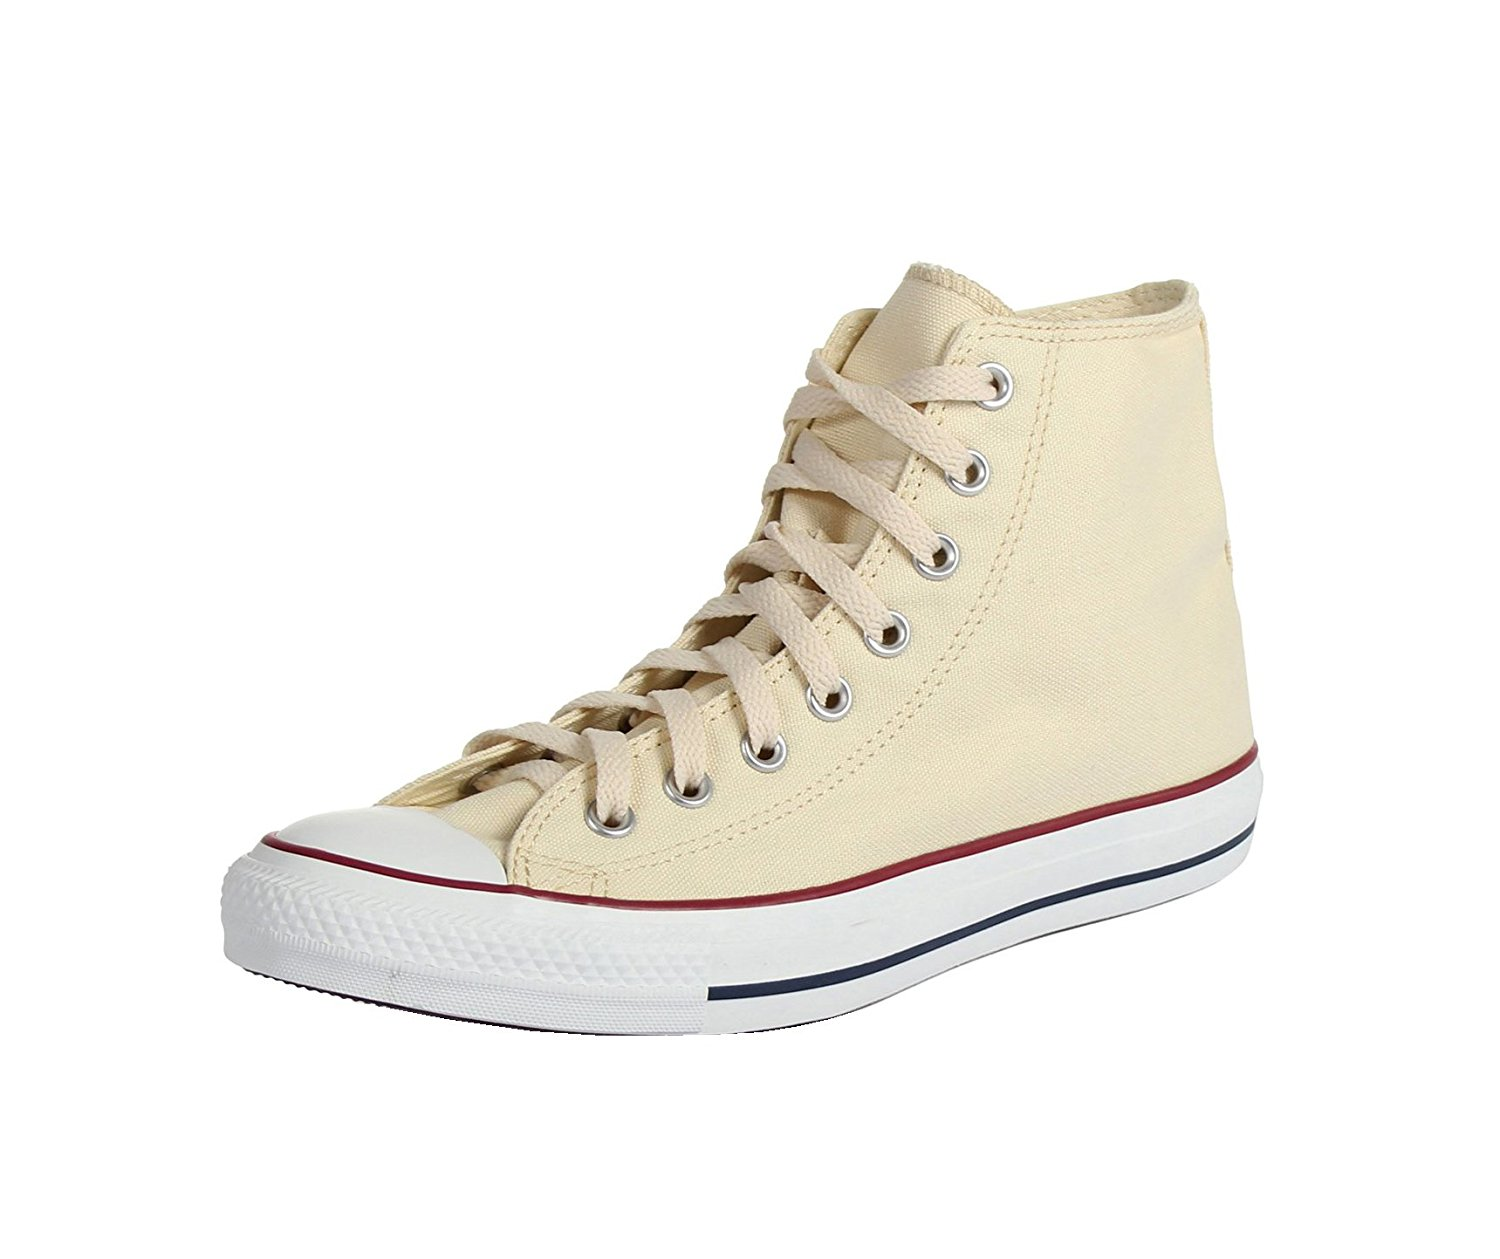 Converse All Star Hi Patch Logo White Canvas by Converse